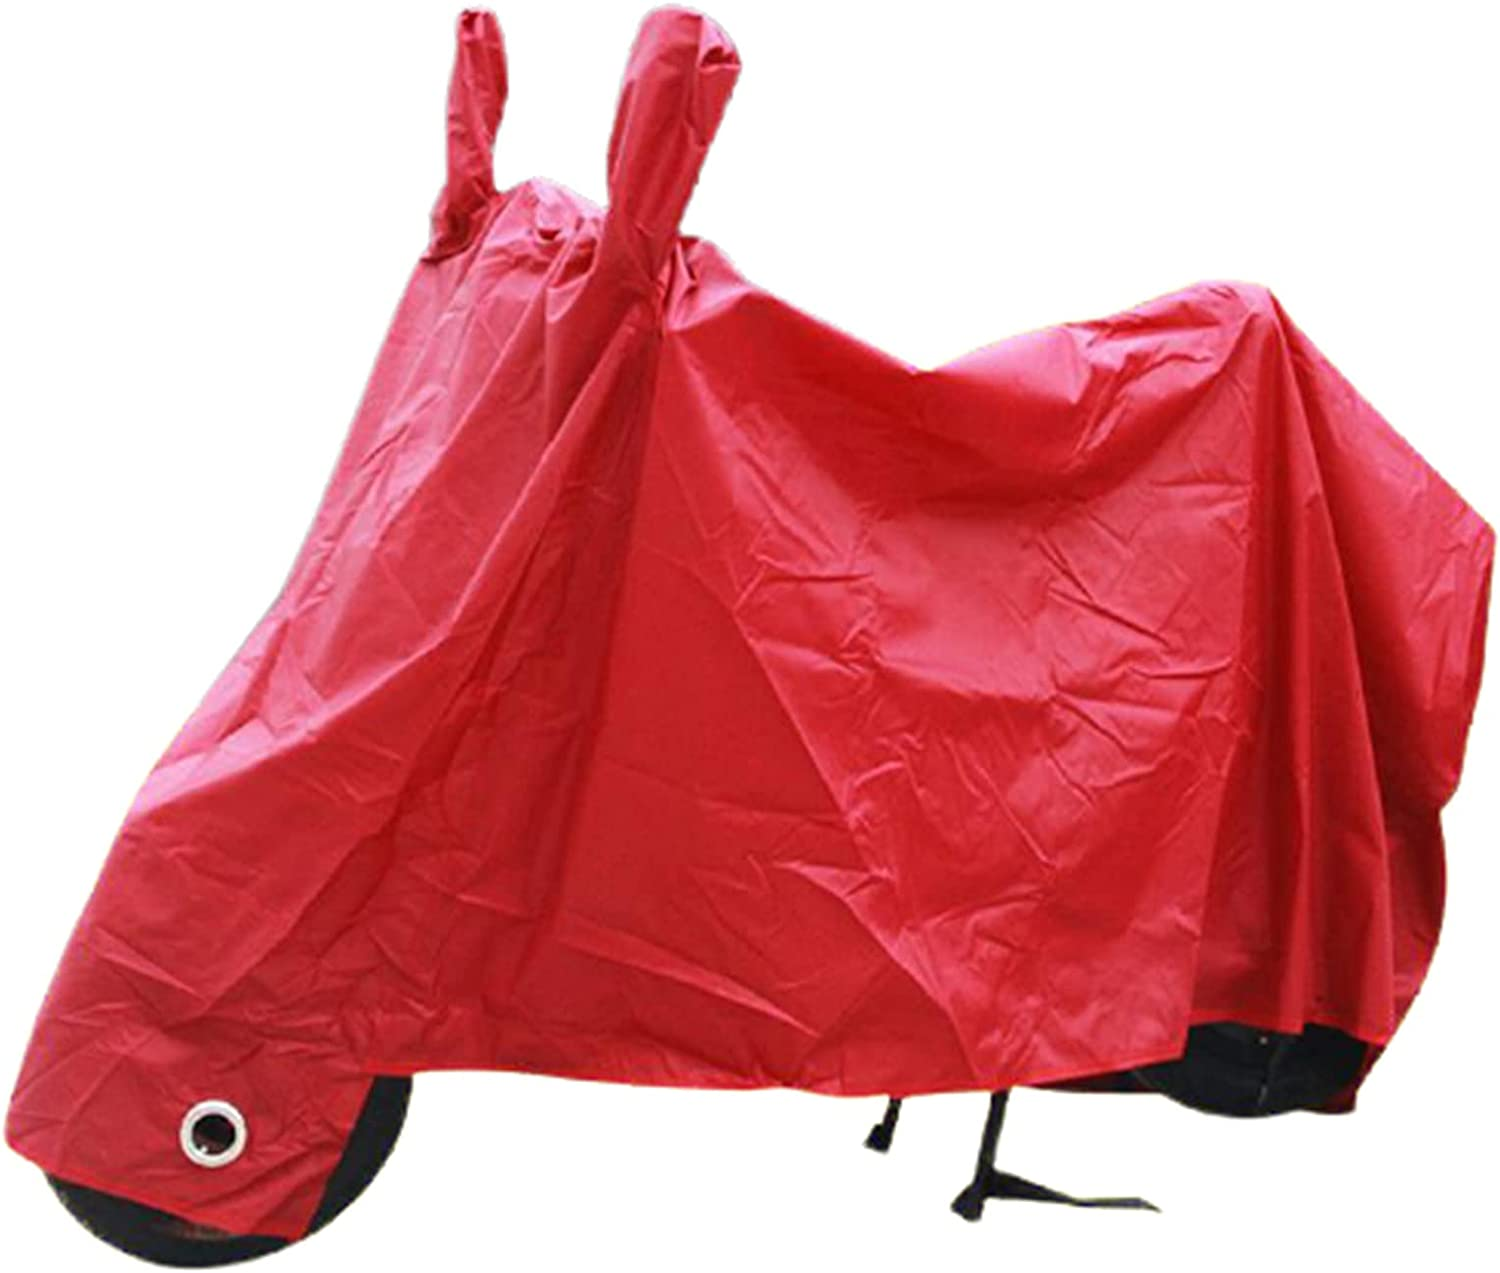 Sungkeen Bicycle Cover Garage Protective Protectio 4 years warranty UV Gorgeous Dust